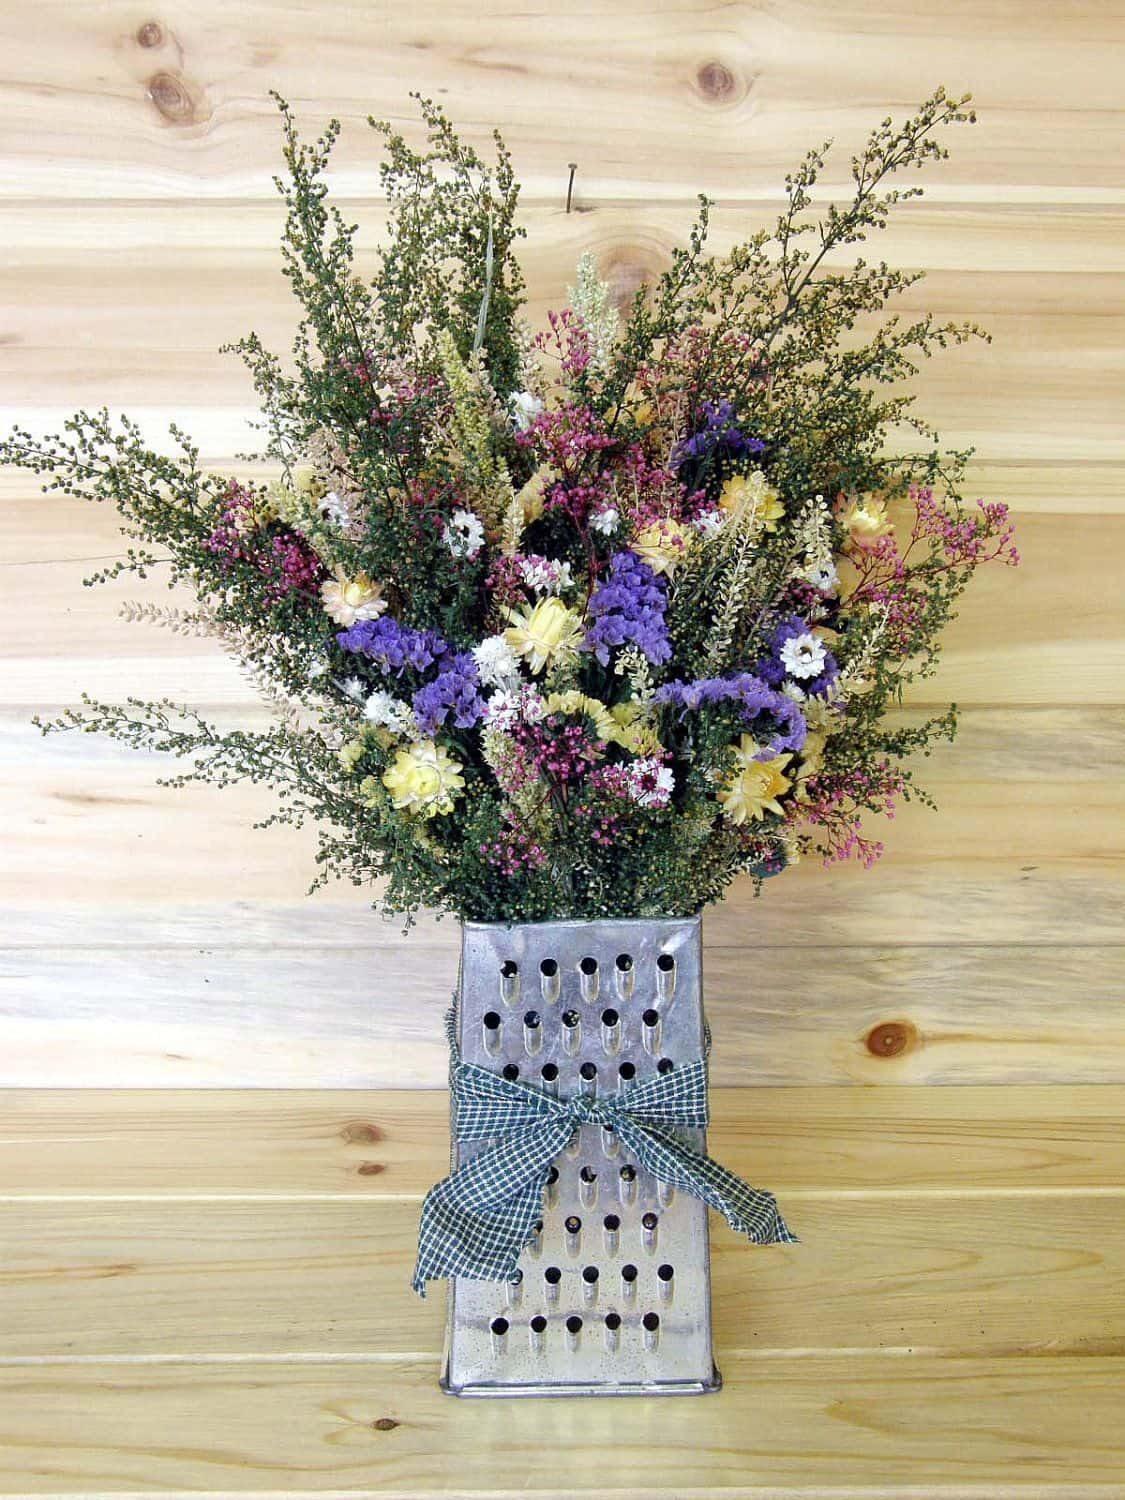 Dried country flower bouquet in a grater